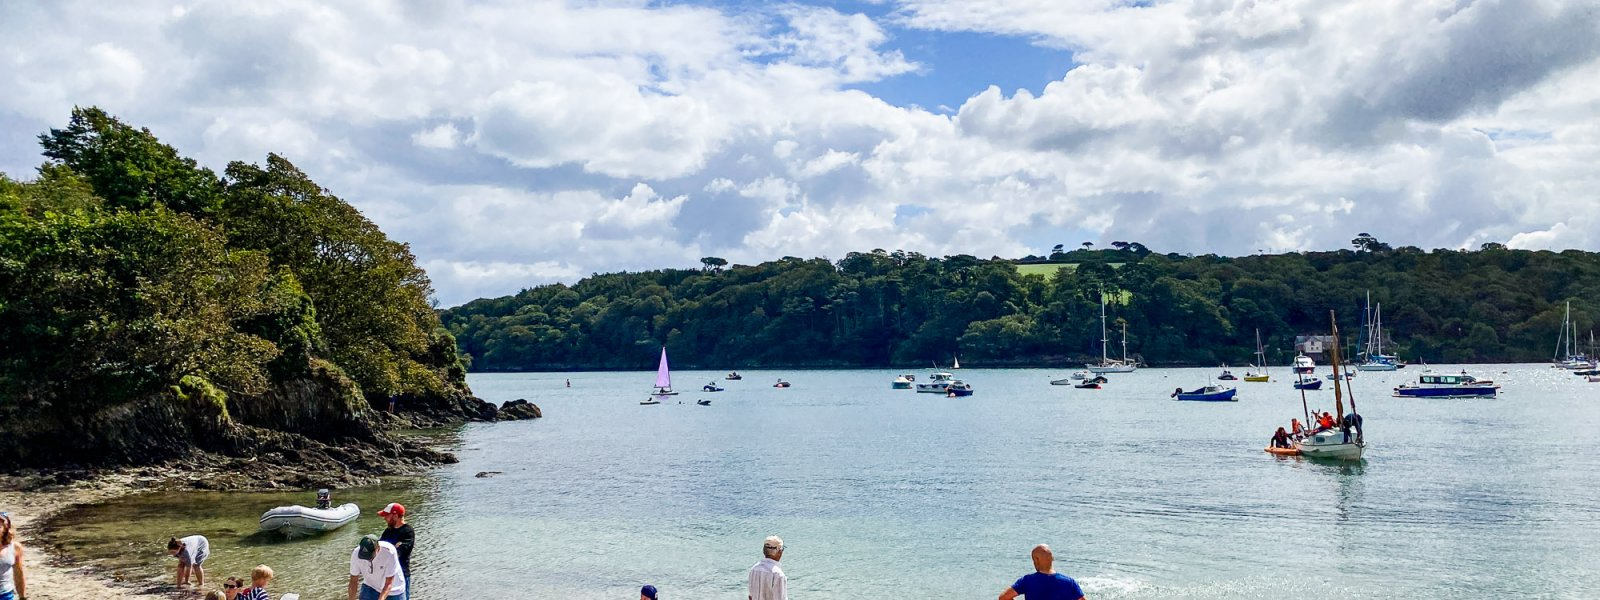 Mawnan Smith to The Ferry Boat Inn at Helford Passage